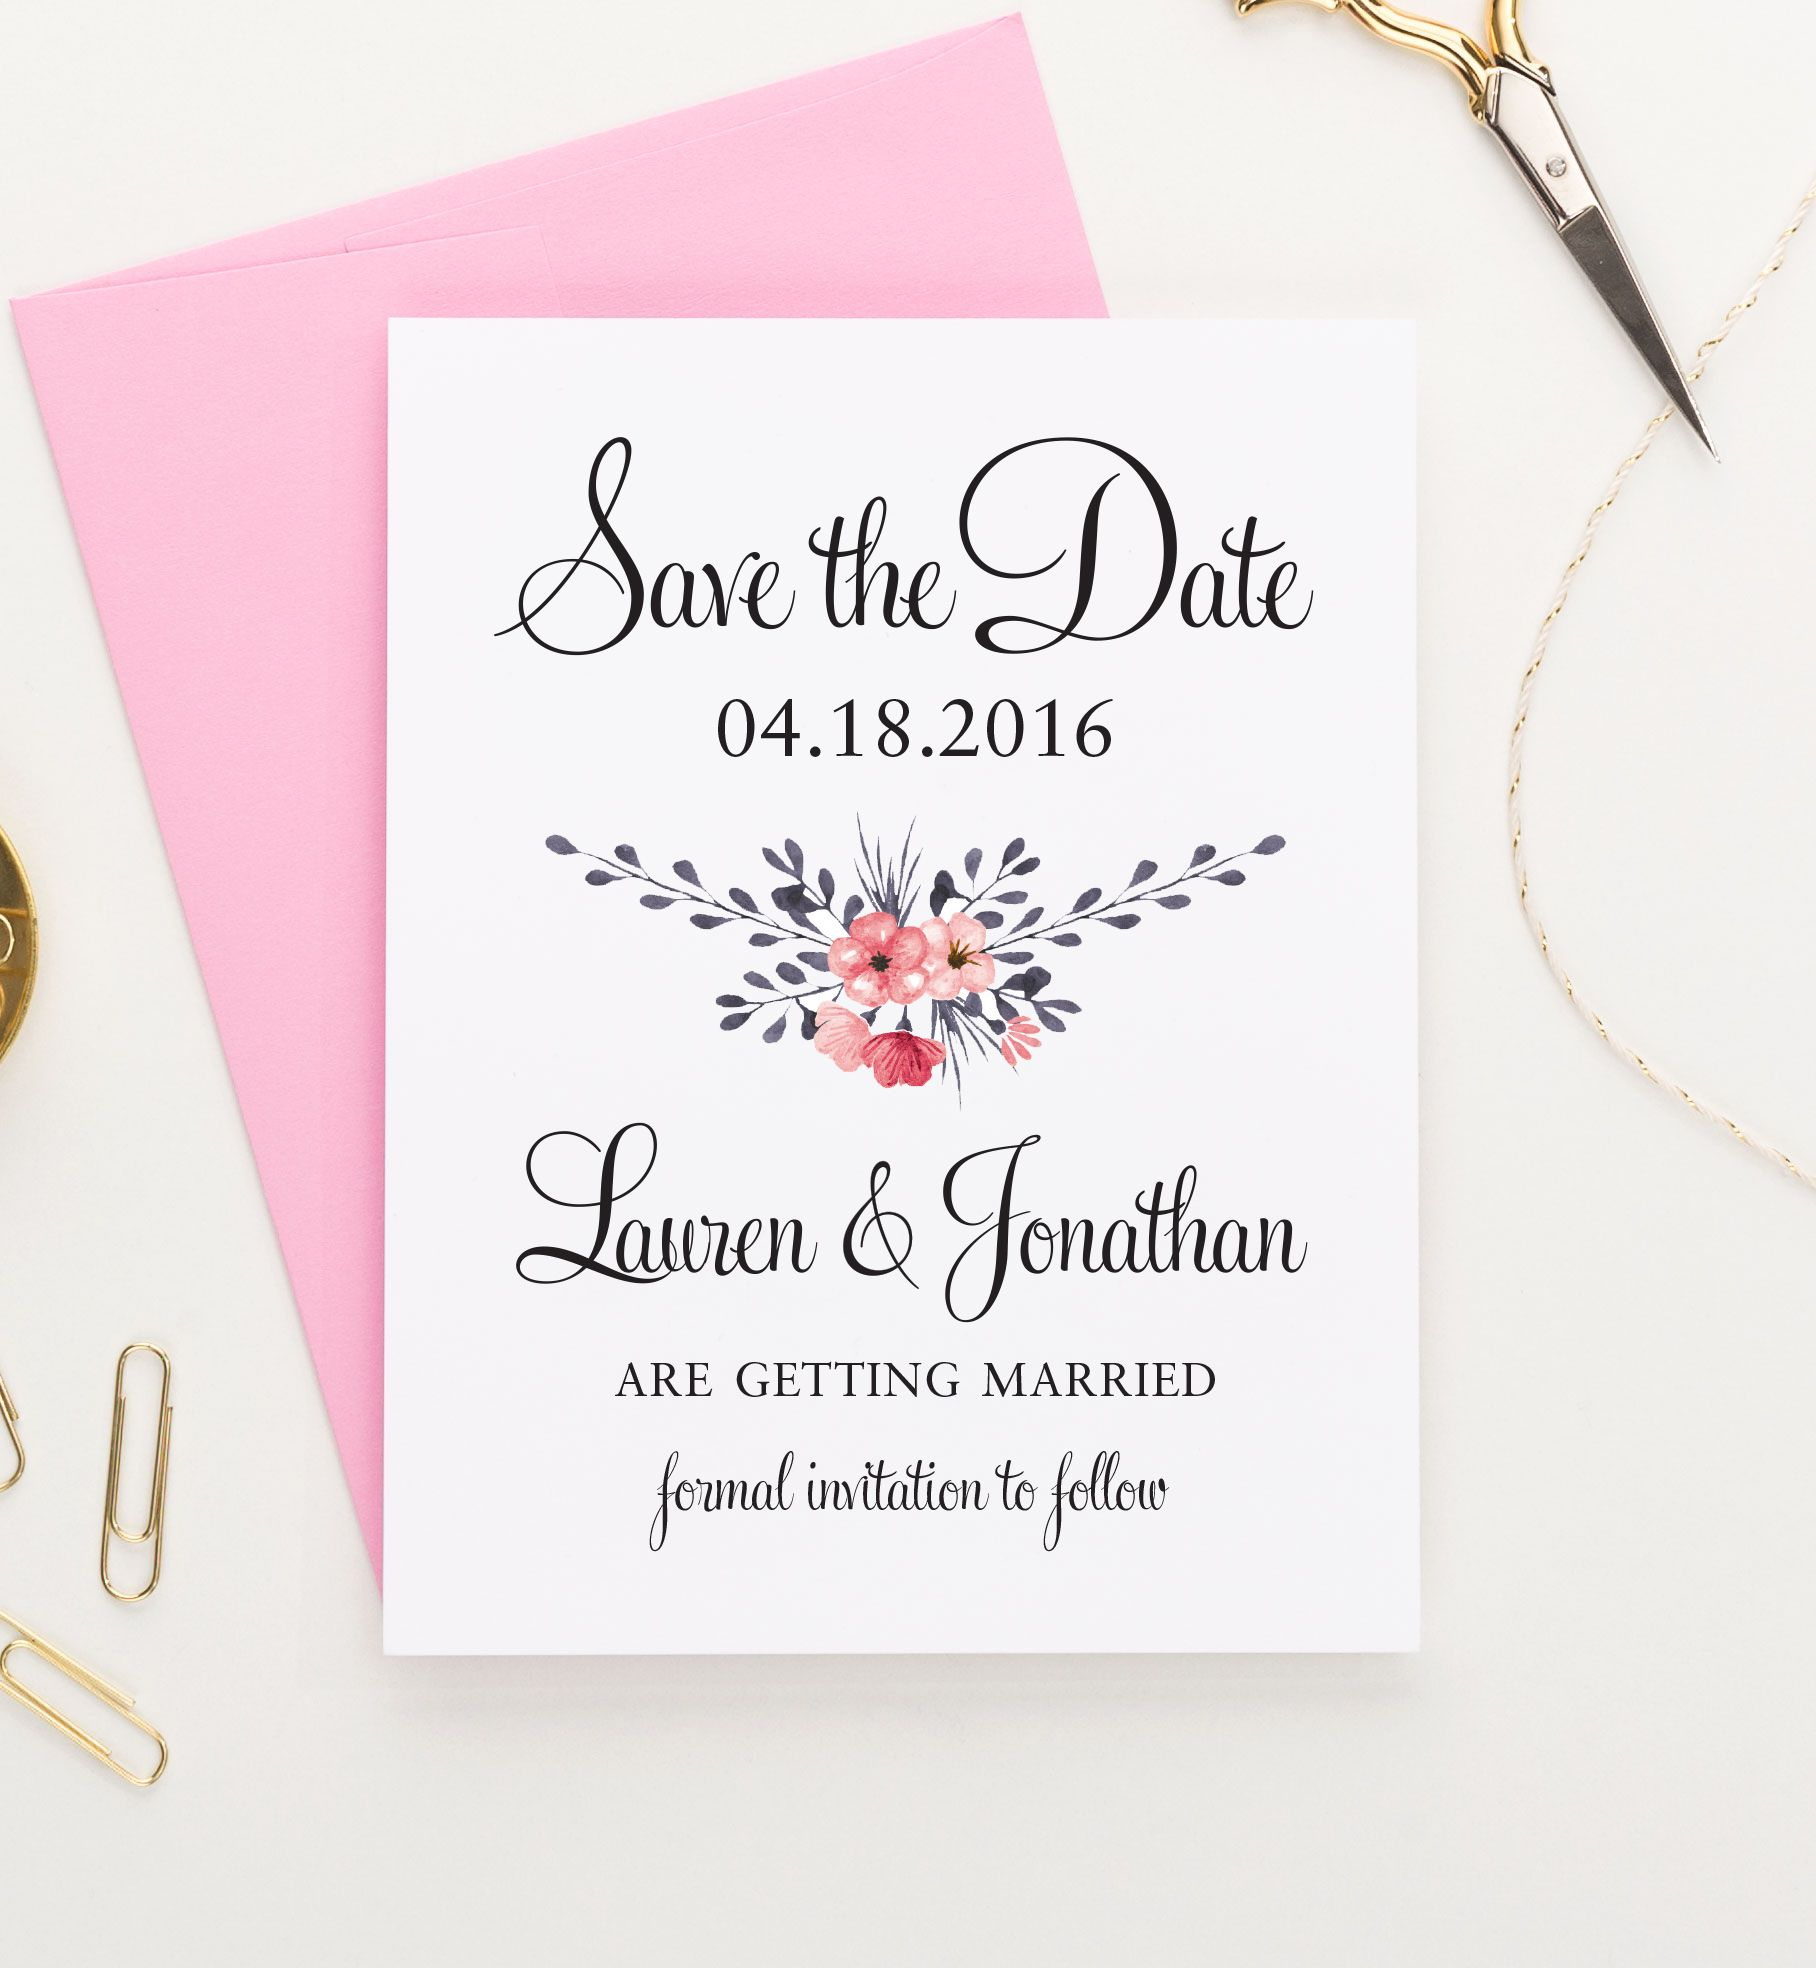 Floral save the date wedding announcement modern save the date floral save the date wedding announcement modern save the date monicamarmolfo Image collections